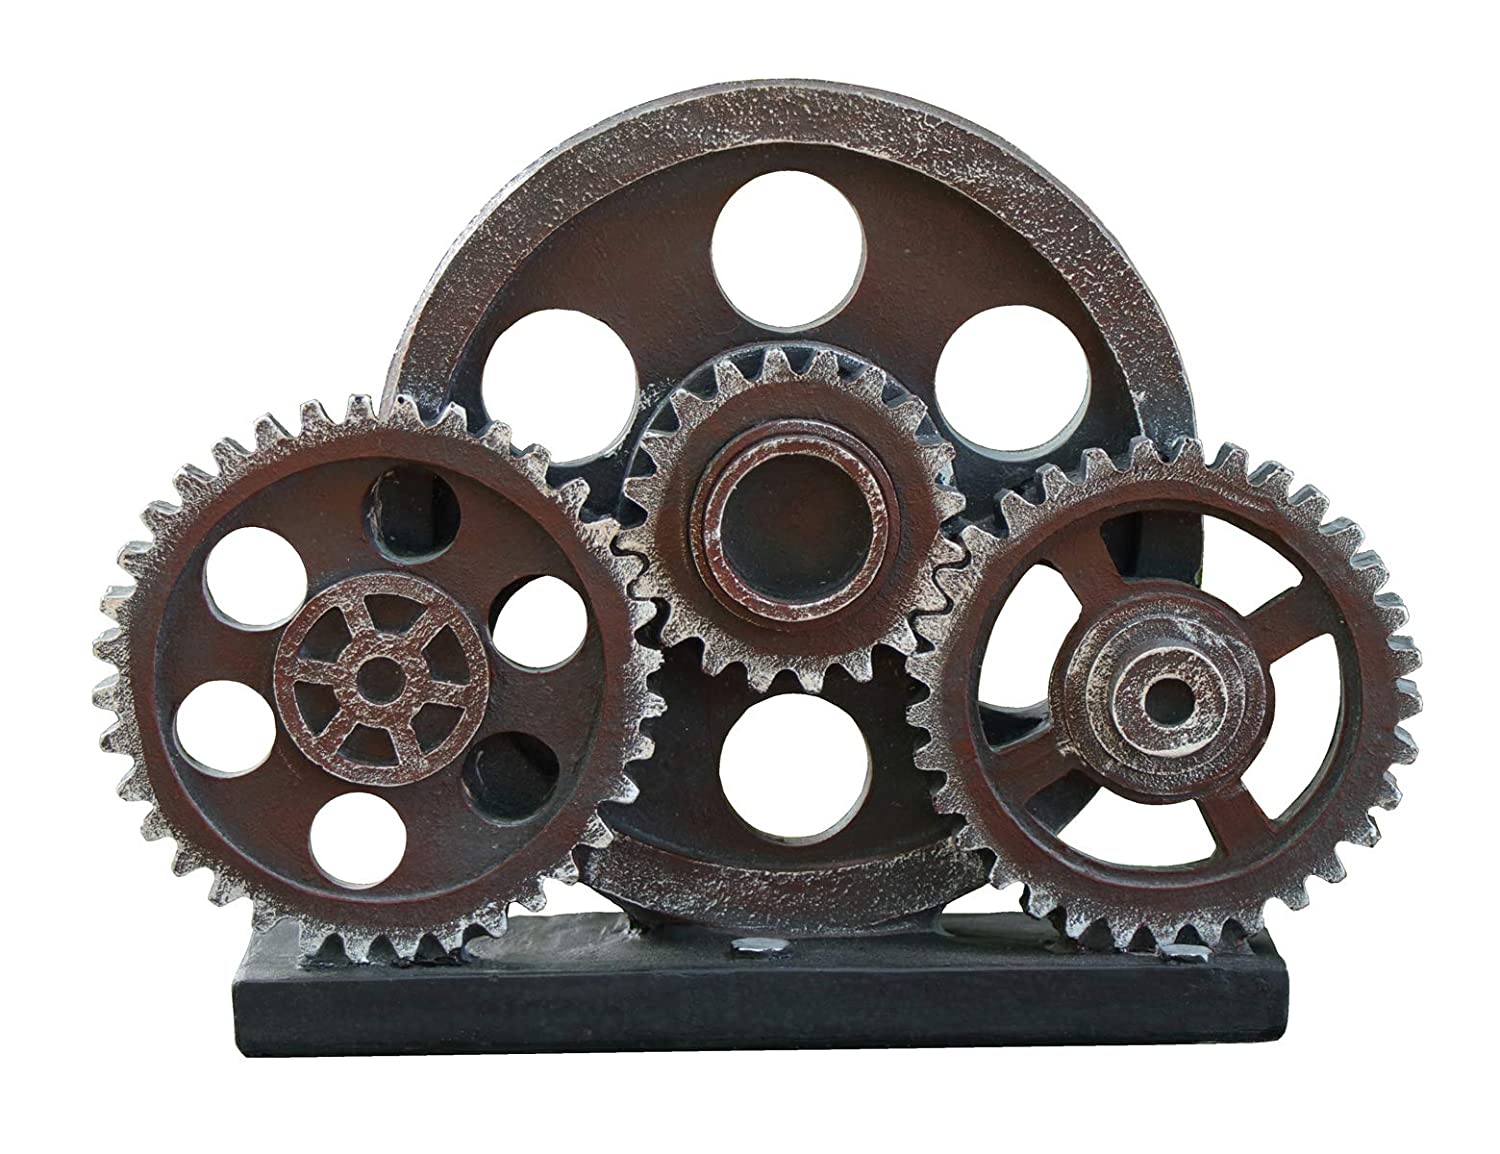 "Rmdusk Industrial Steampunk Gear Train Figurine, Cog Wheel Statue, Resin Model, Home Bar Décor Ornament 7.7"" H Copper"